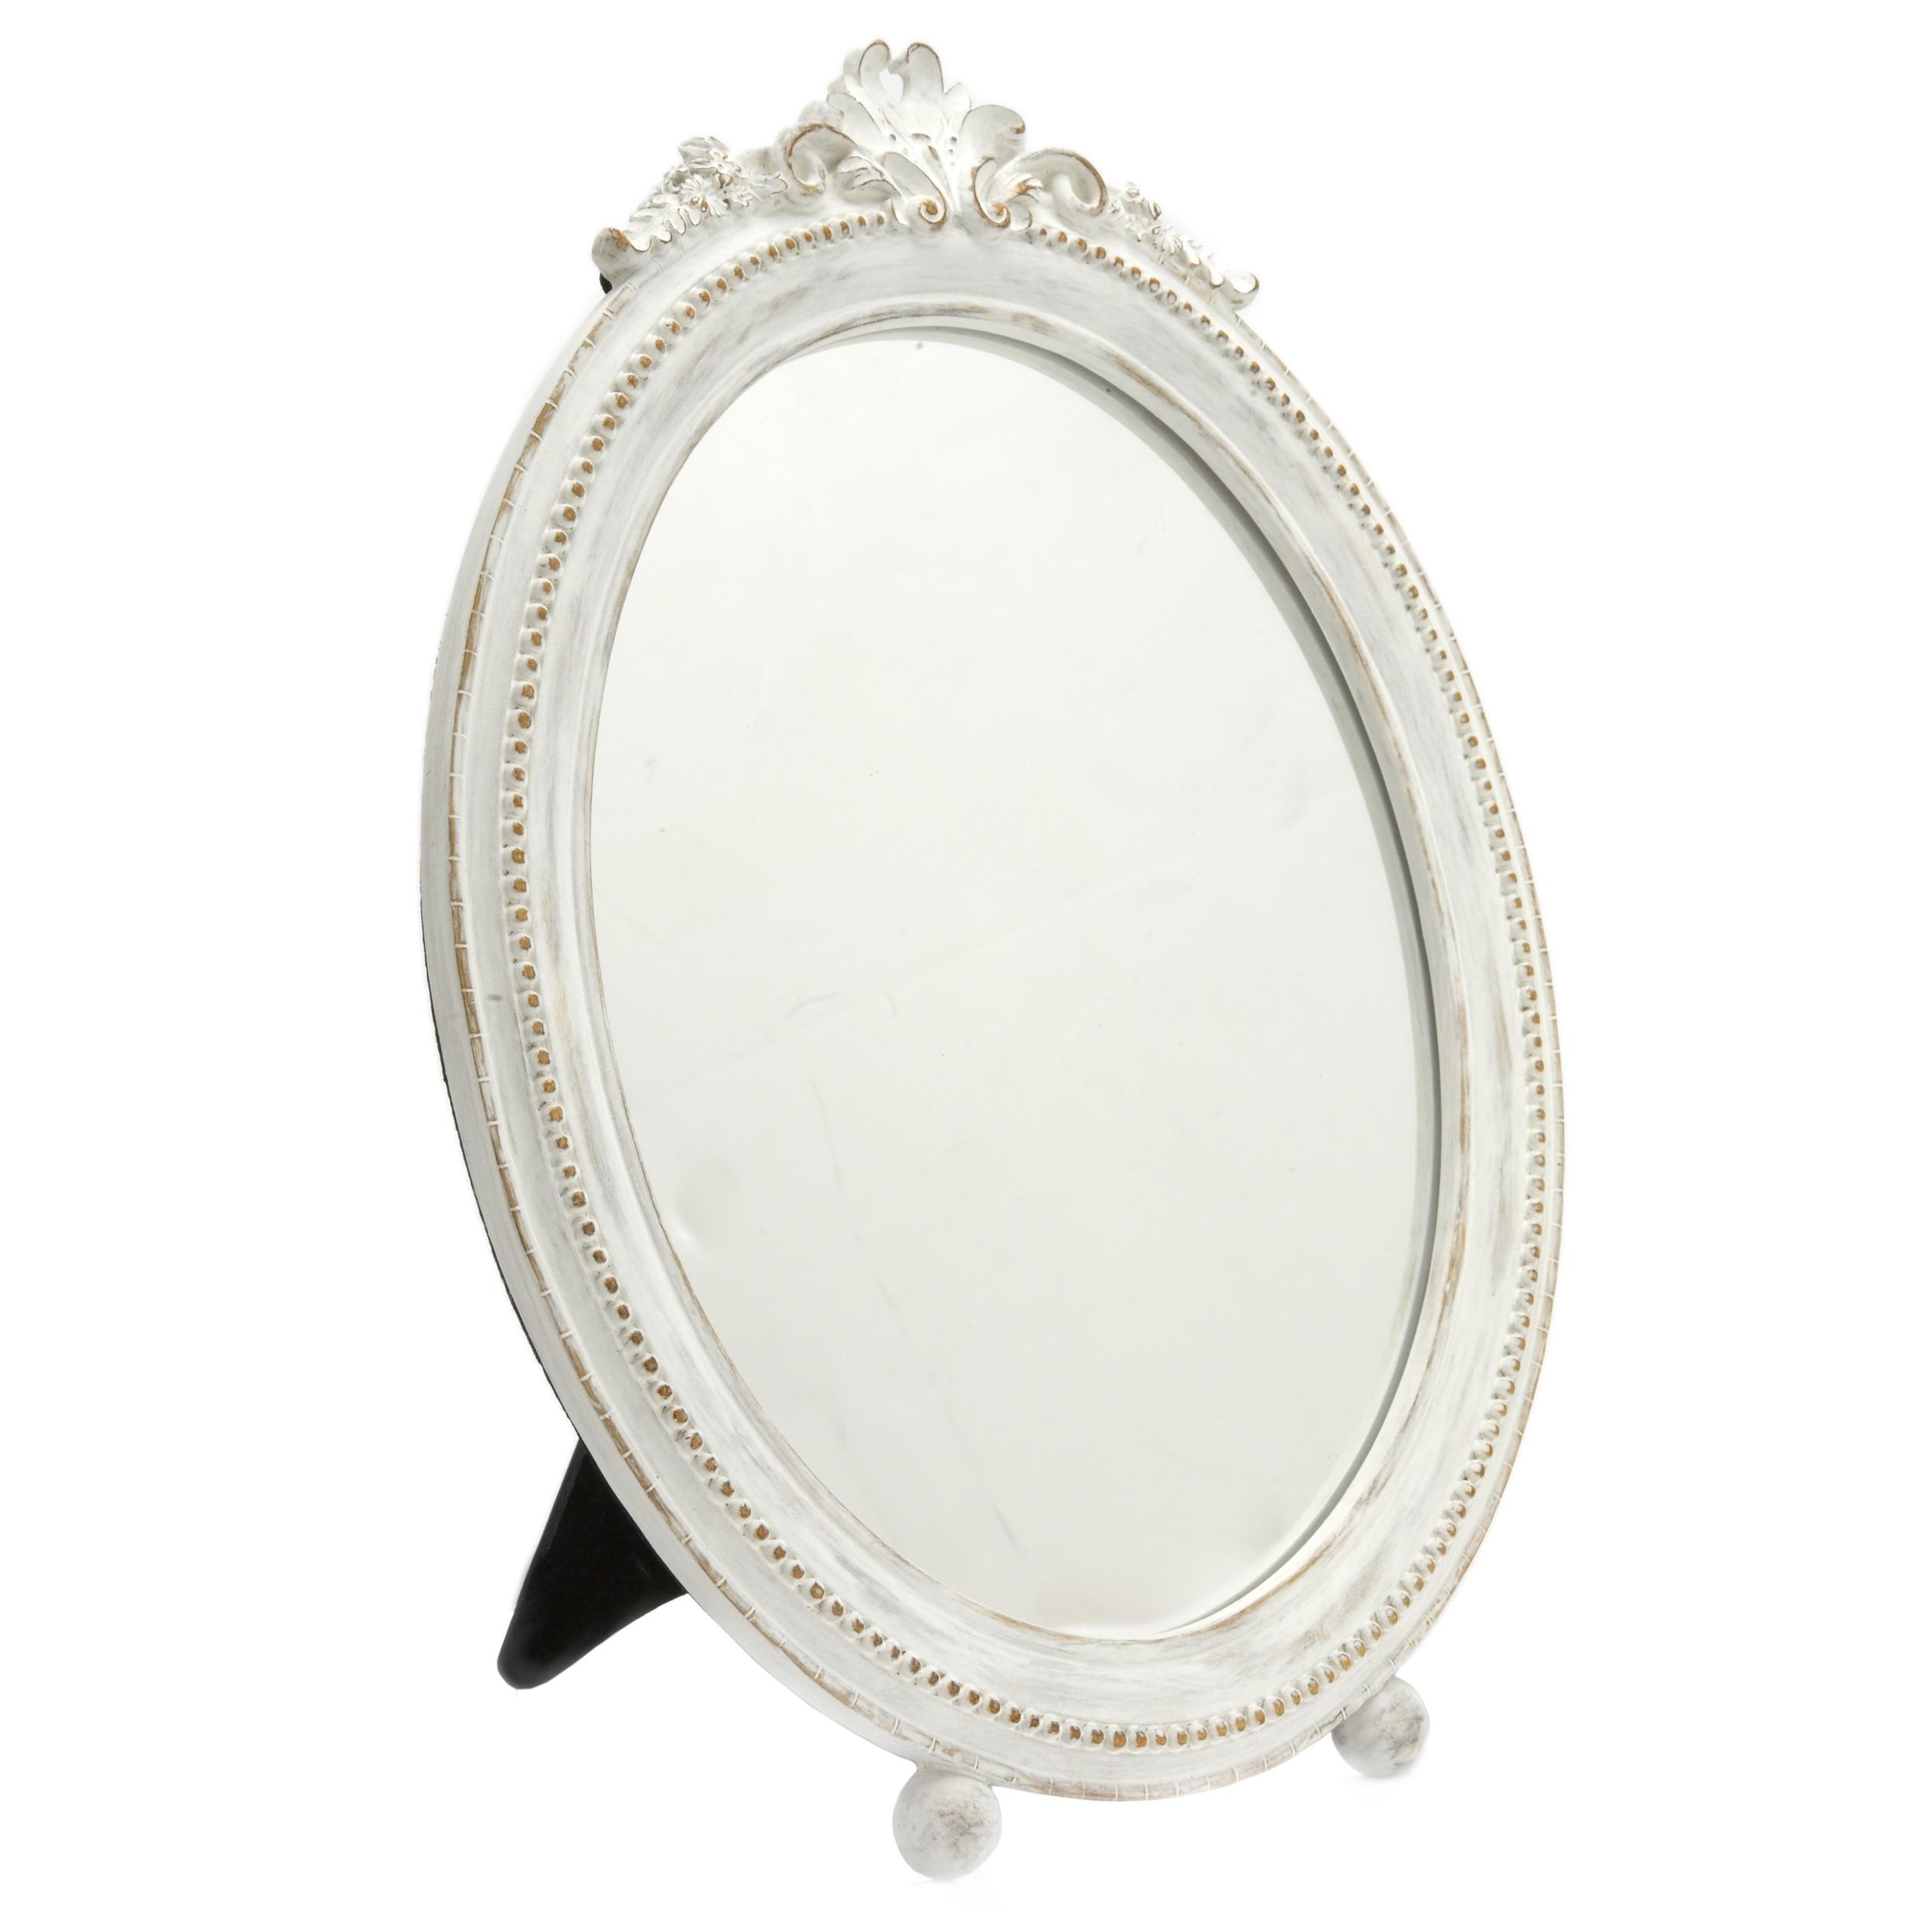 Wonderful Table Mirrors For Wedding And Party Centerpieces Round Throughout Oval Cream Mirror (Image 20 of 20)